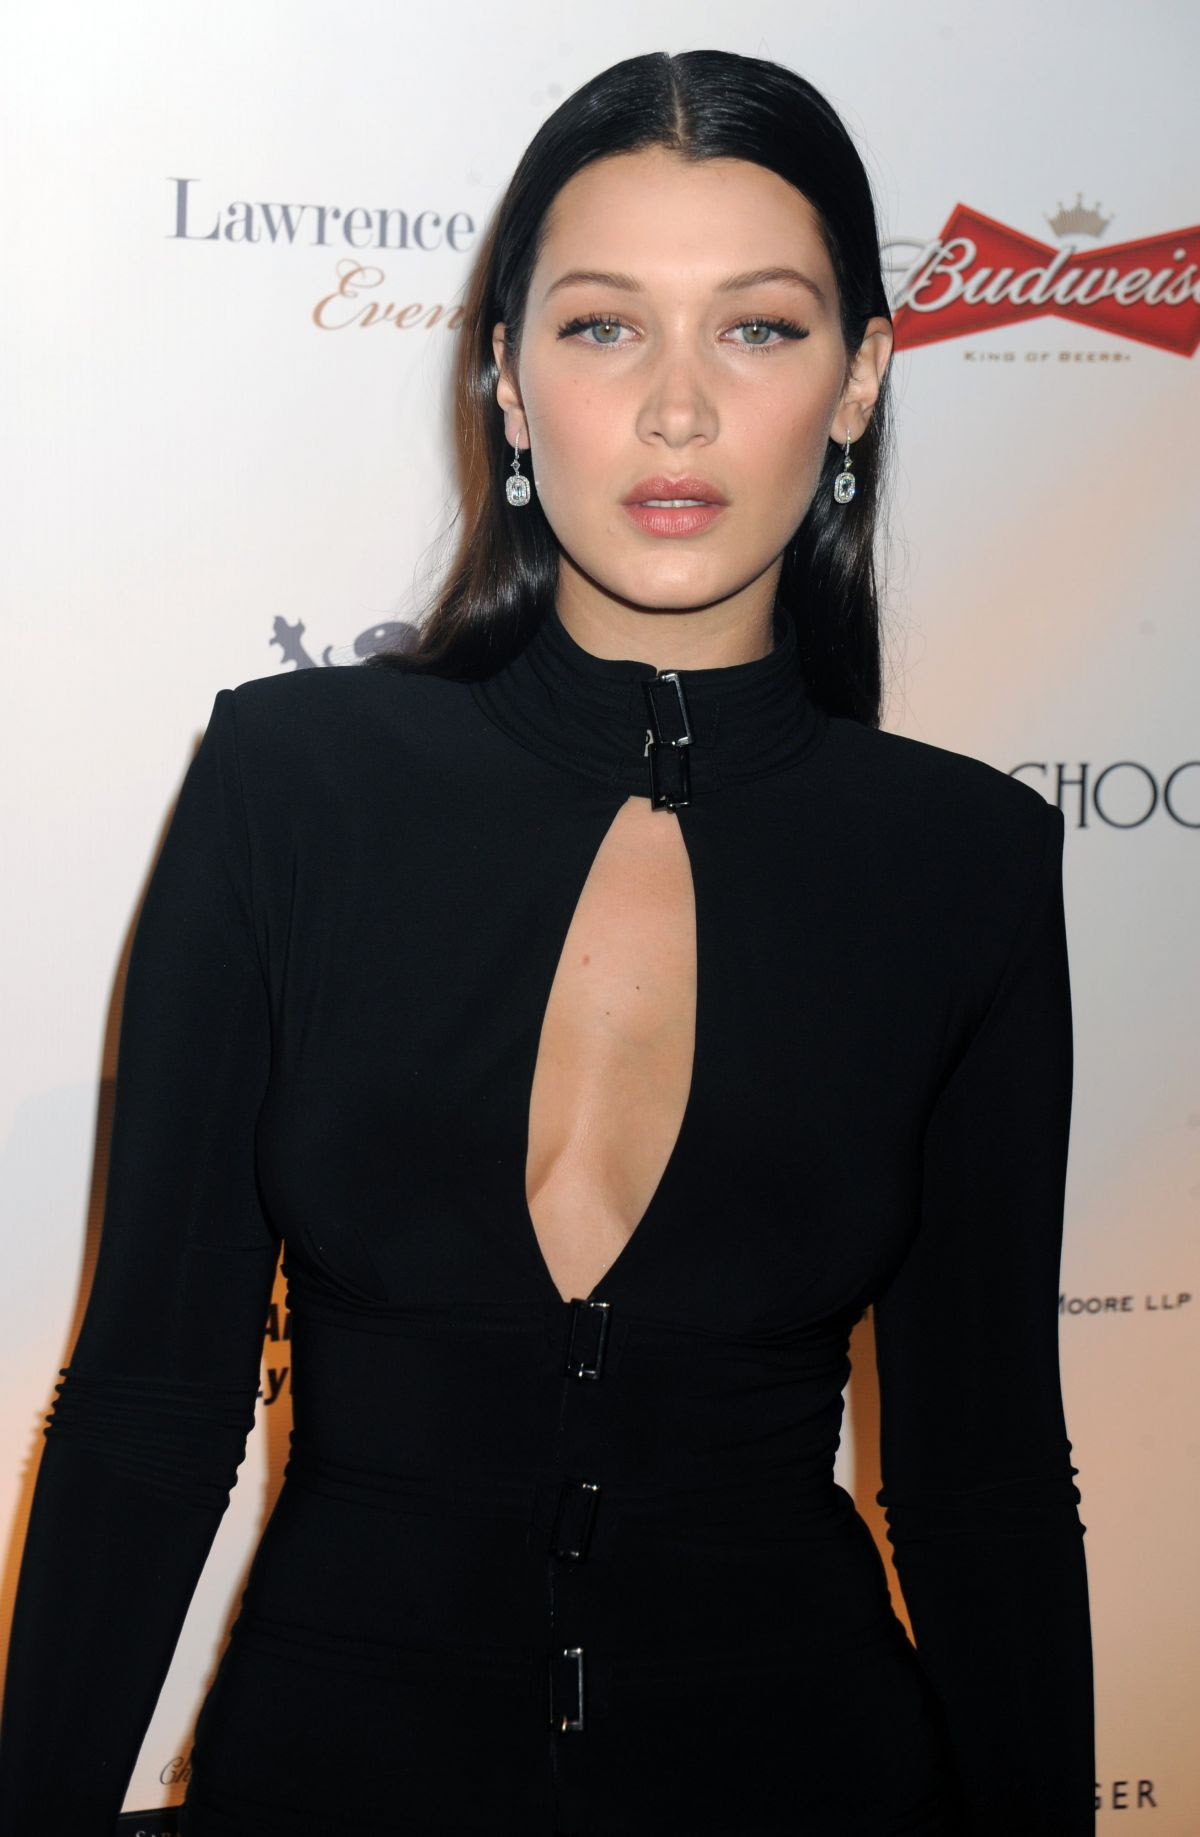 BELLA HADID at Global Lyme Alliance: Uniting for a Lyme-free World Inaugural Gala in New York 10/08/2015